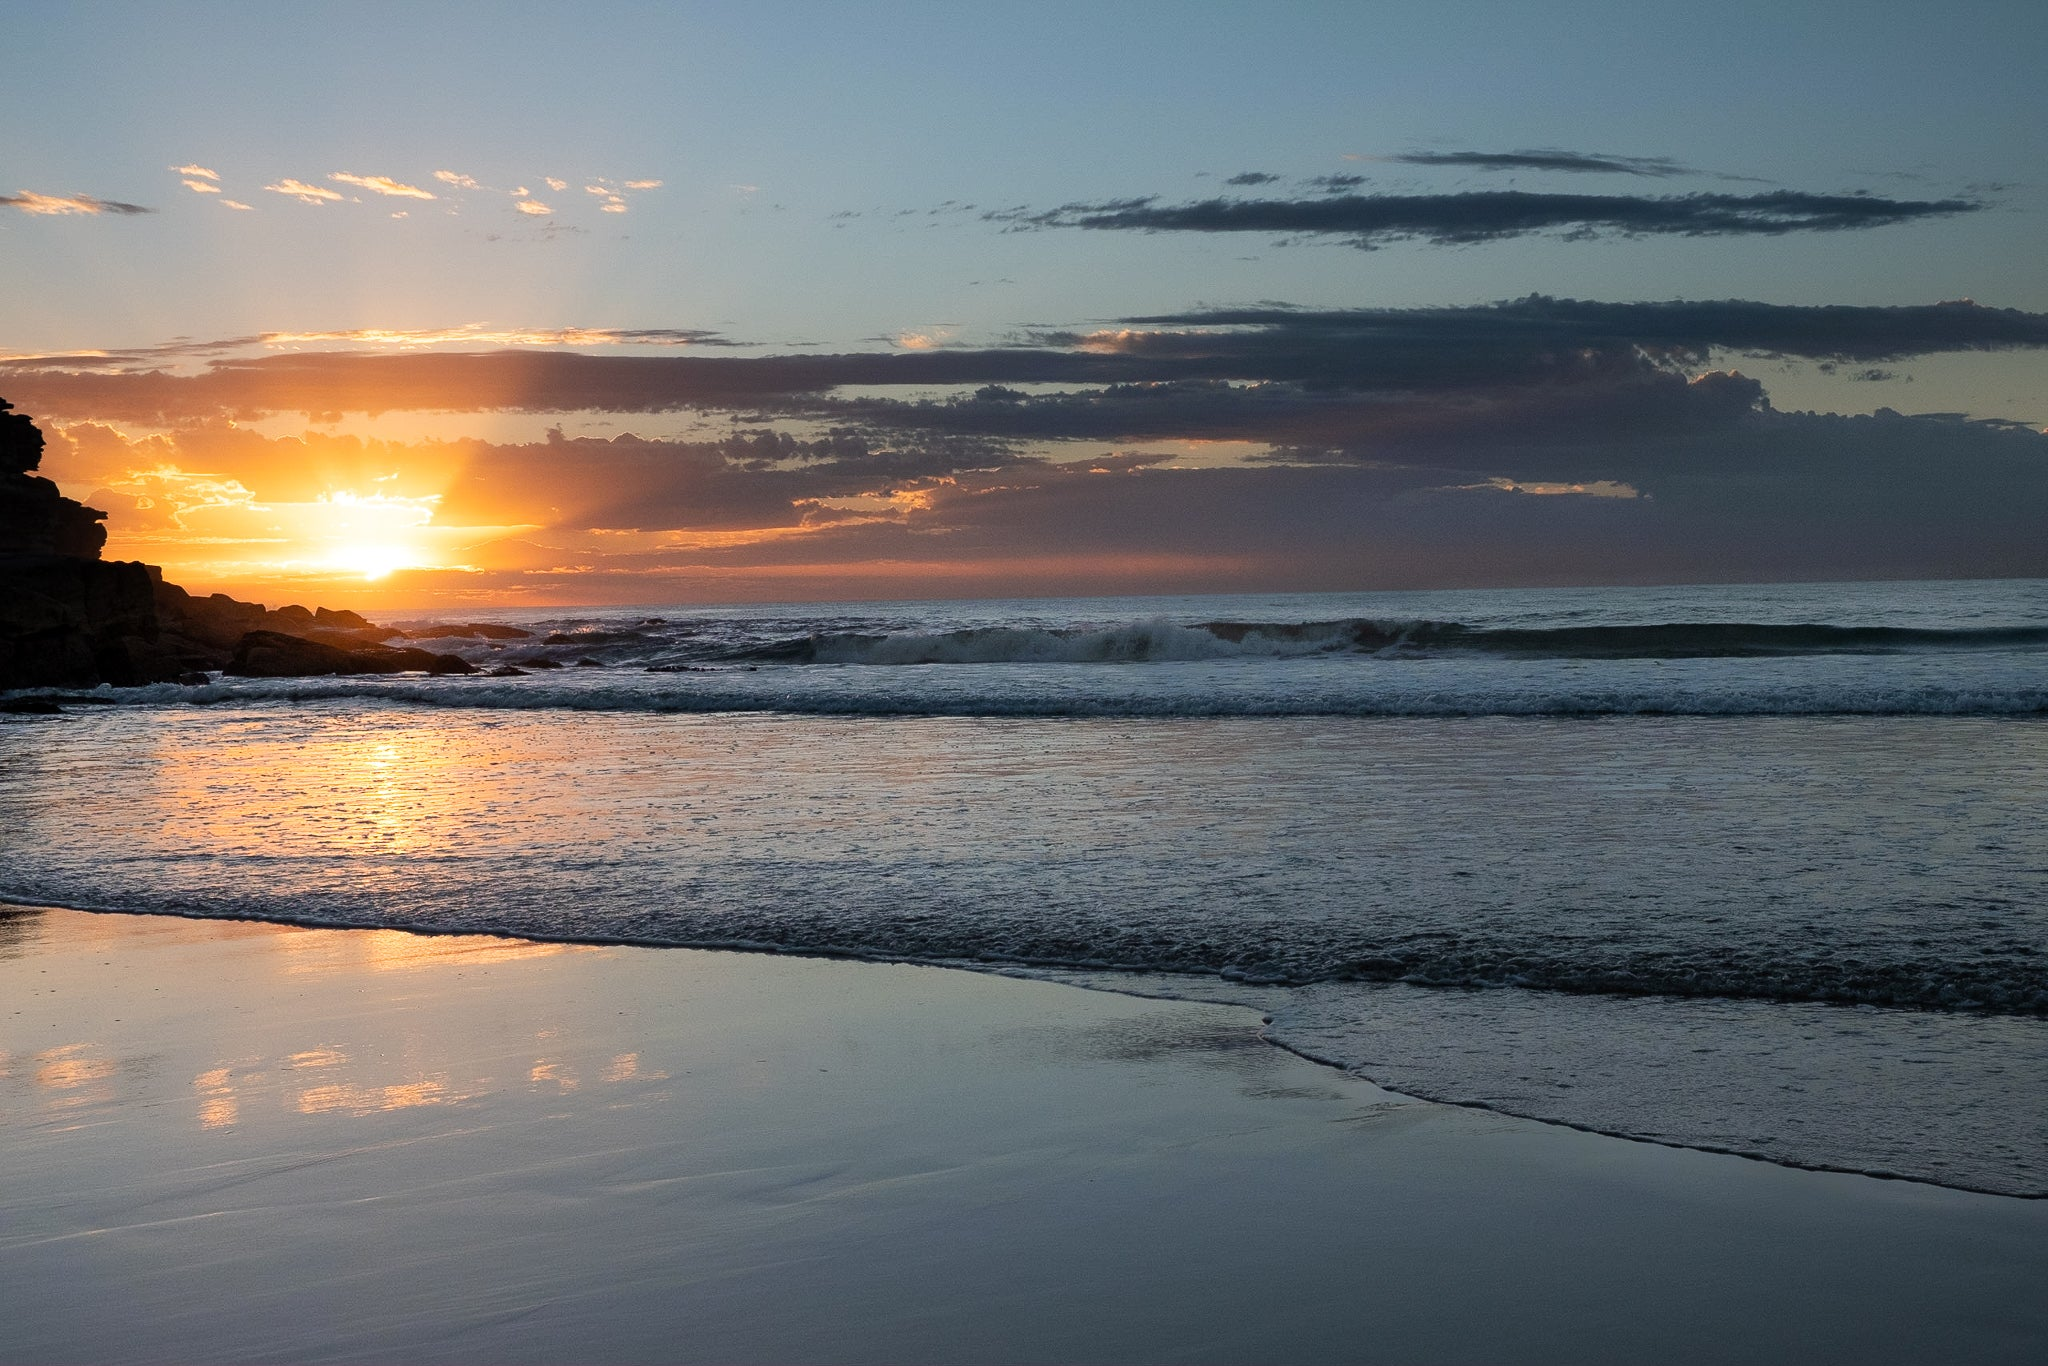 Sunrise photo from the 9th April 2019 at Queenscliff beach in Sydney